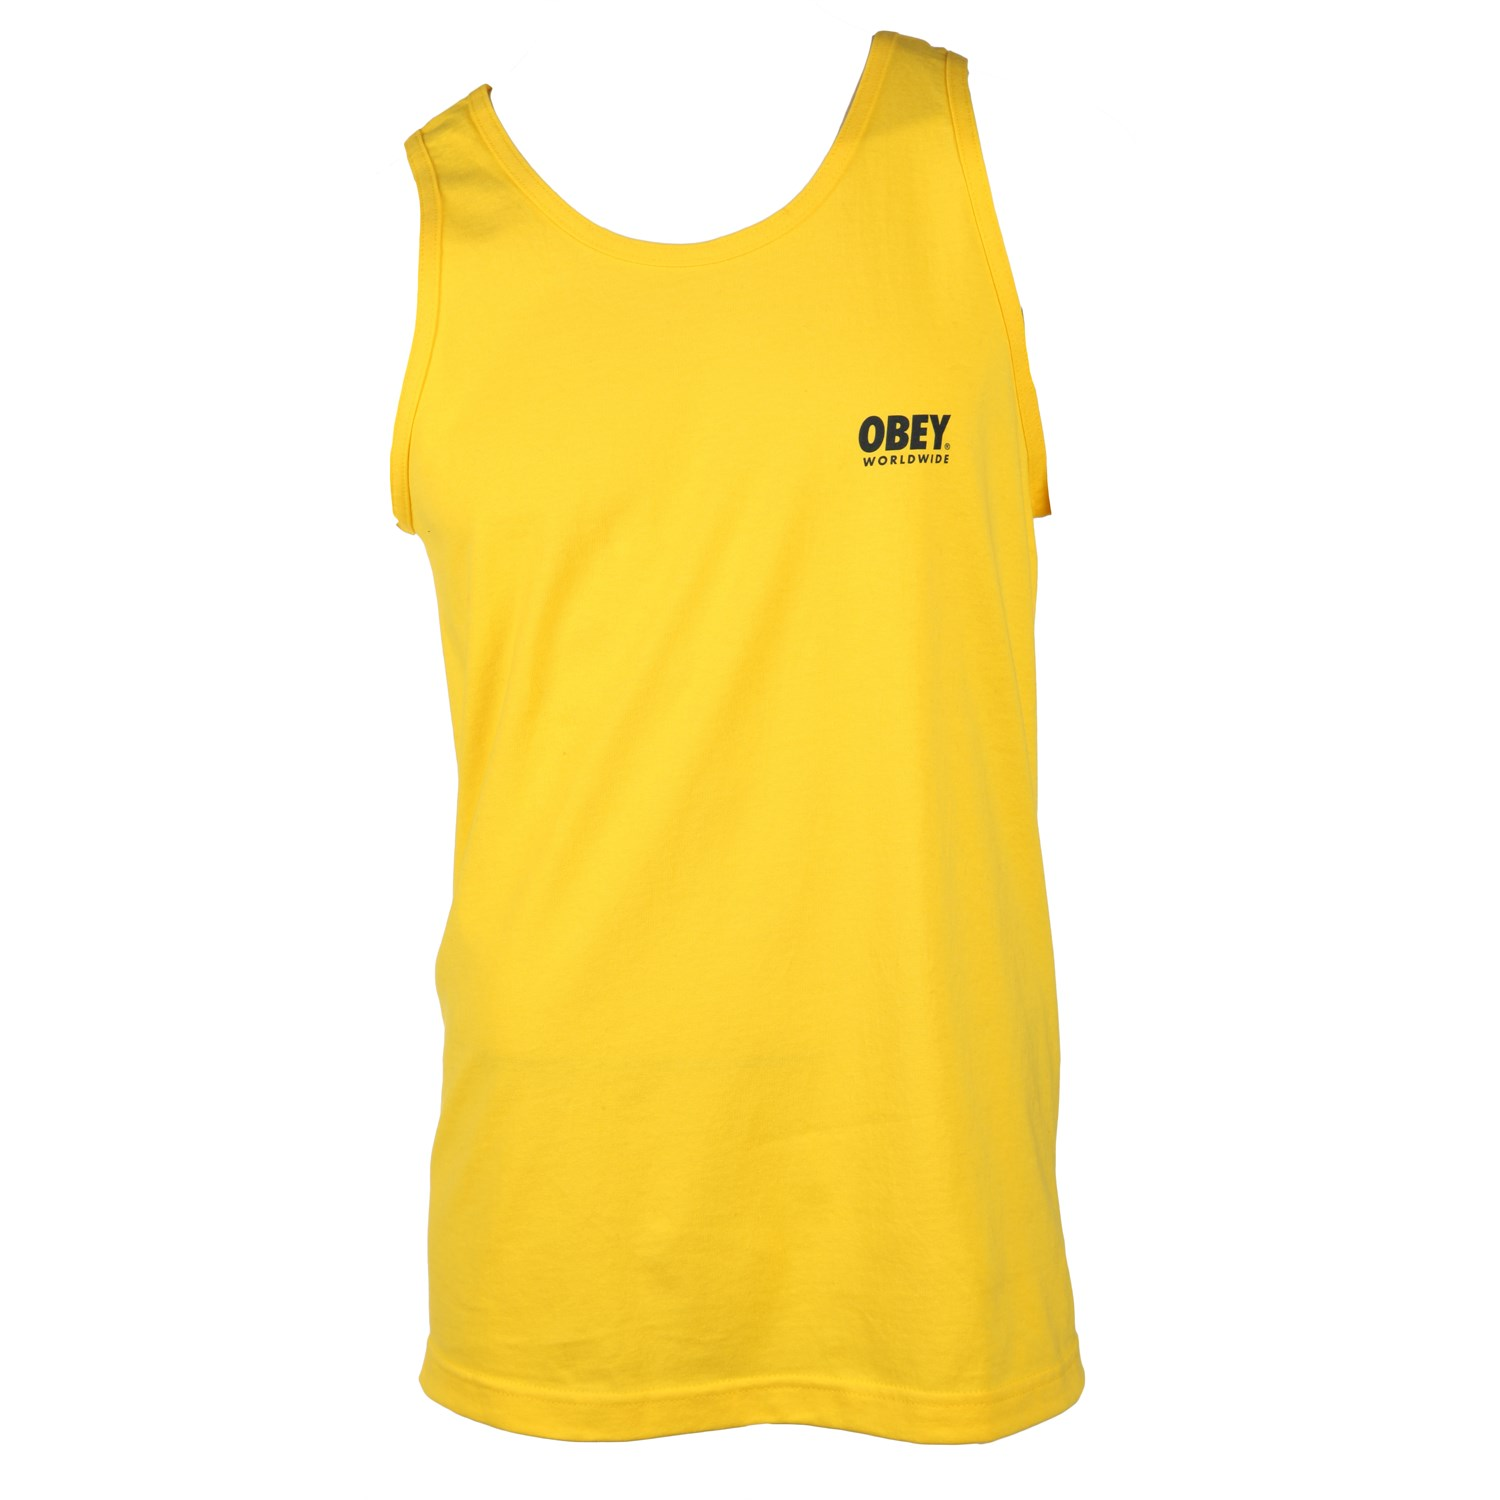 obey clothing worldwide family tank top evo outlet. Black Bedroom Furniture Sets. Home Design Ideas